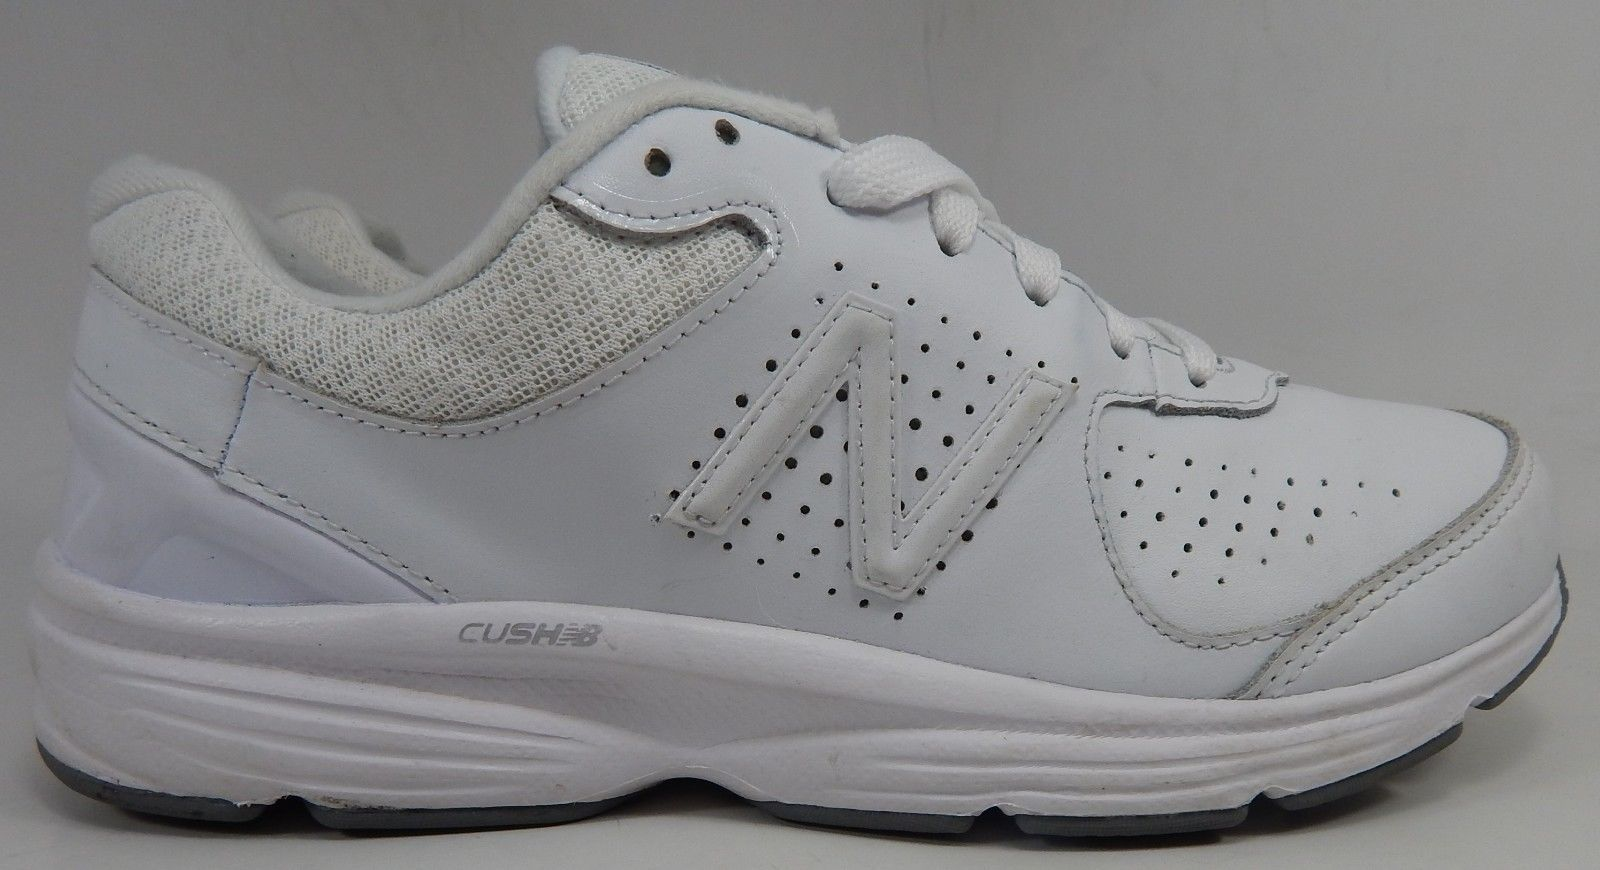 New Balance 411 v2 Women's Walking Shoes Size US 9 M (B) EU 40.5 White WW411WT2